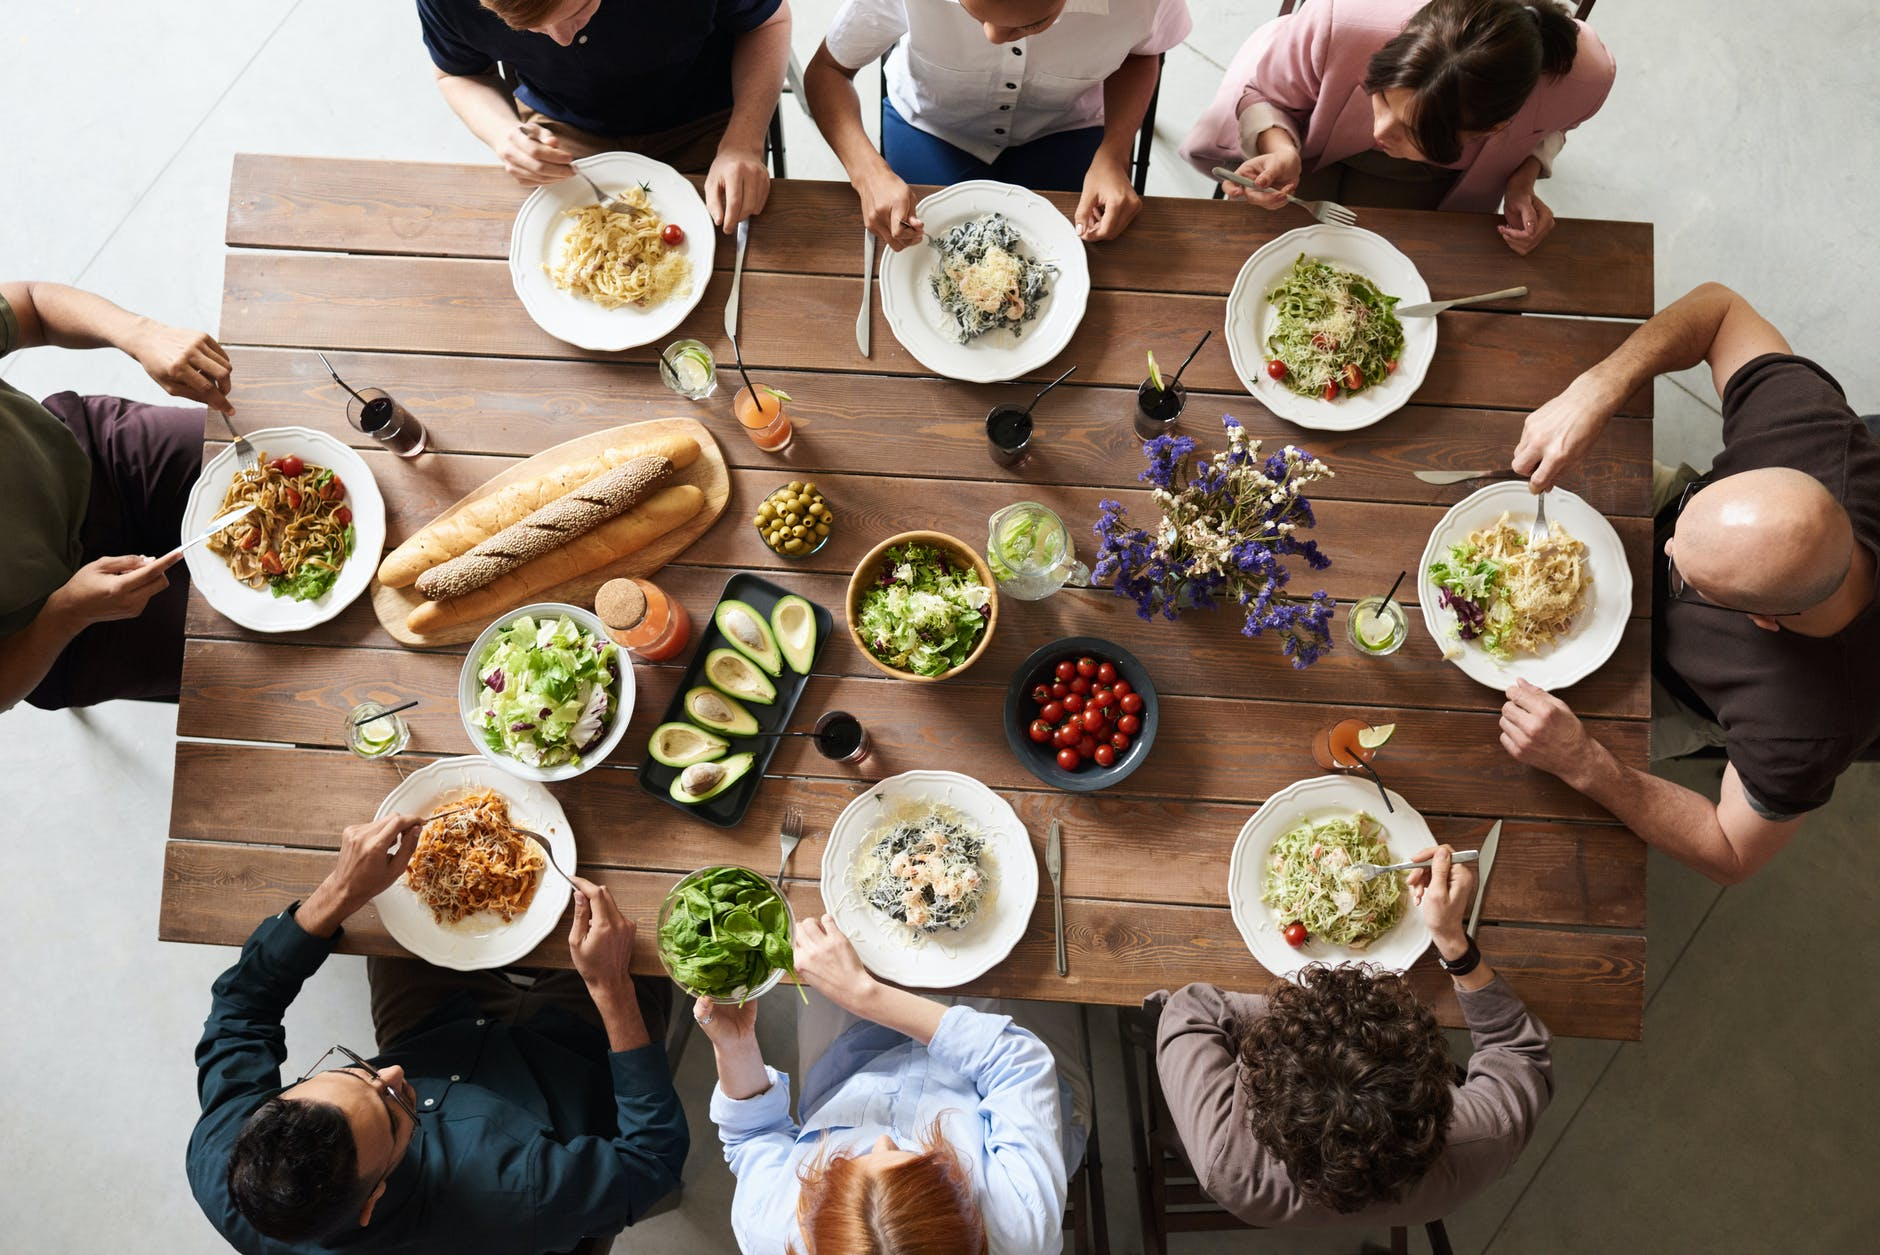 A dinner party, 8 people sit around a table and eat lunch from plates.